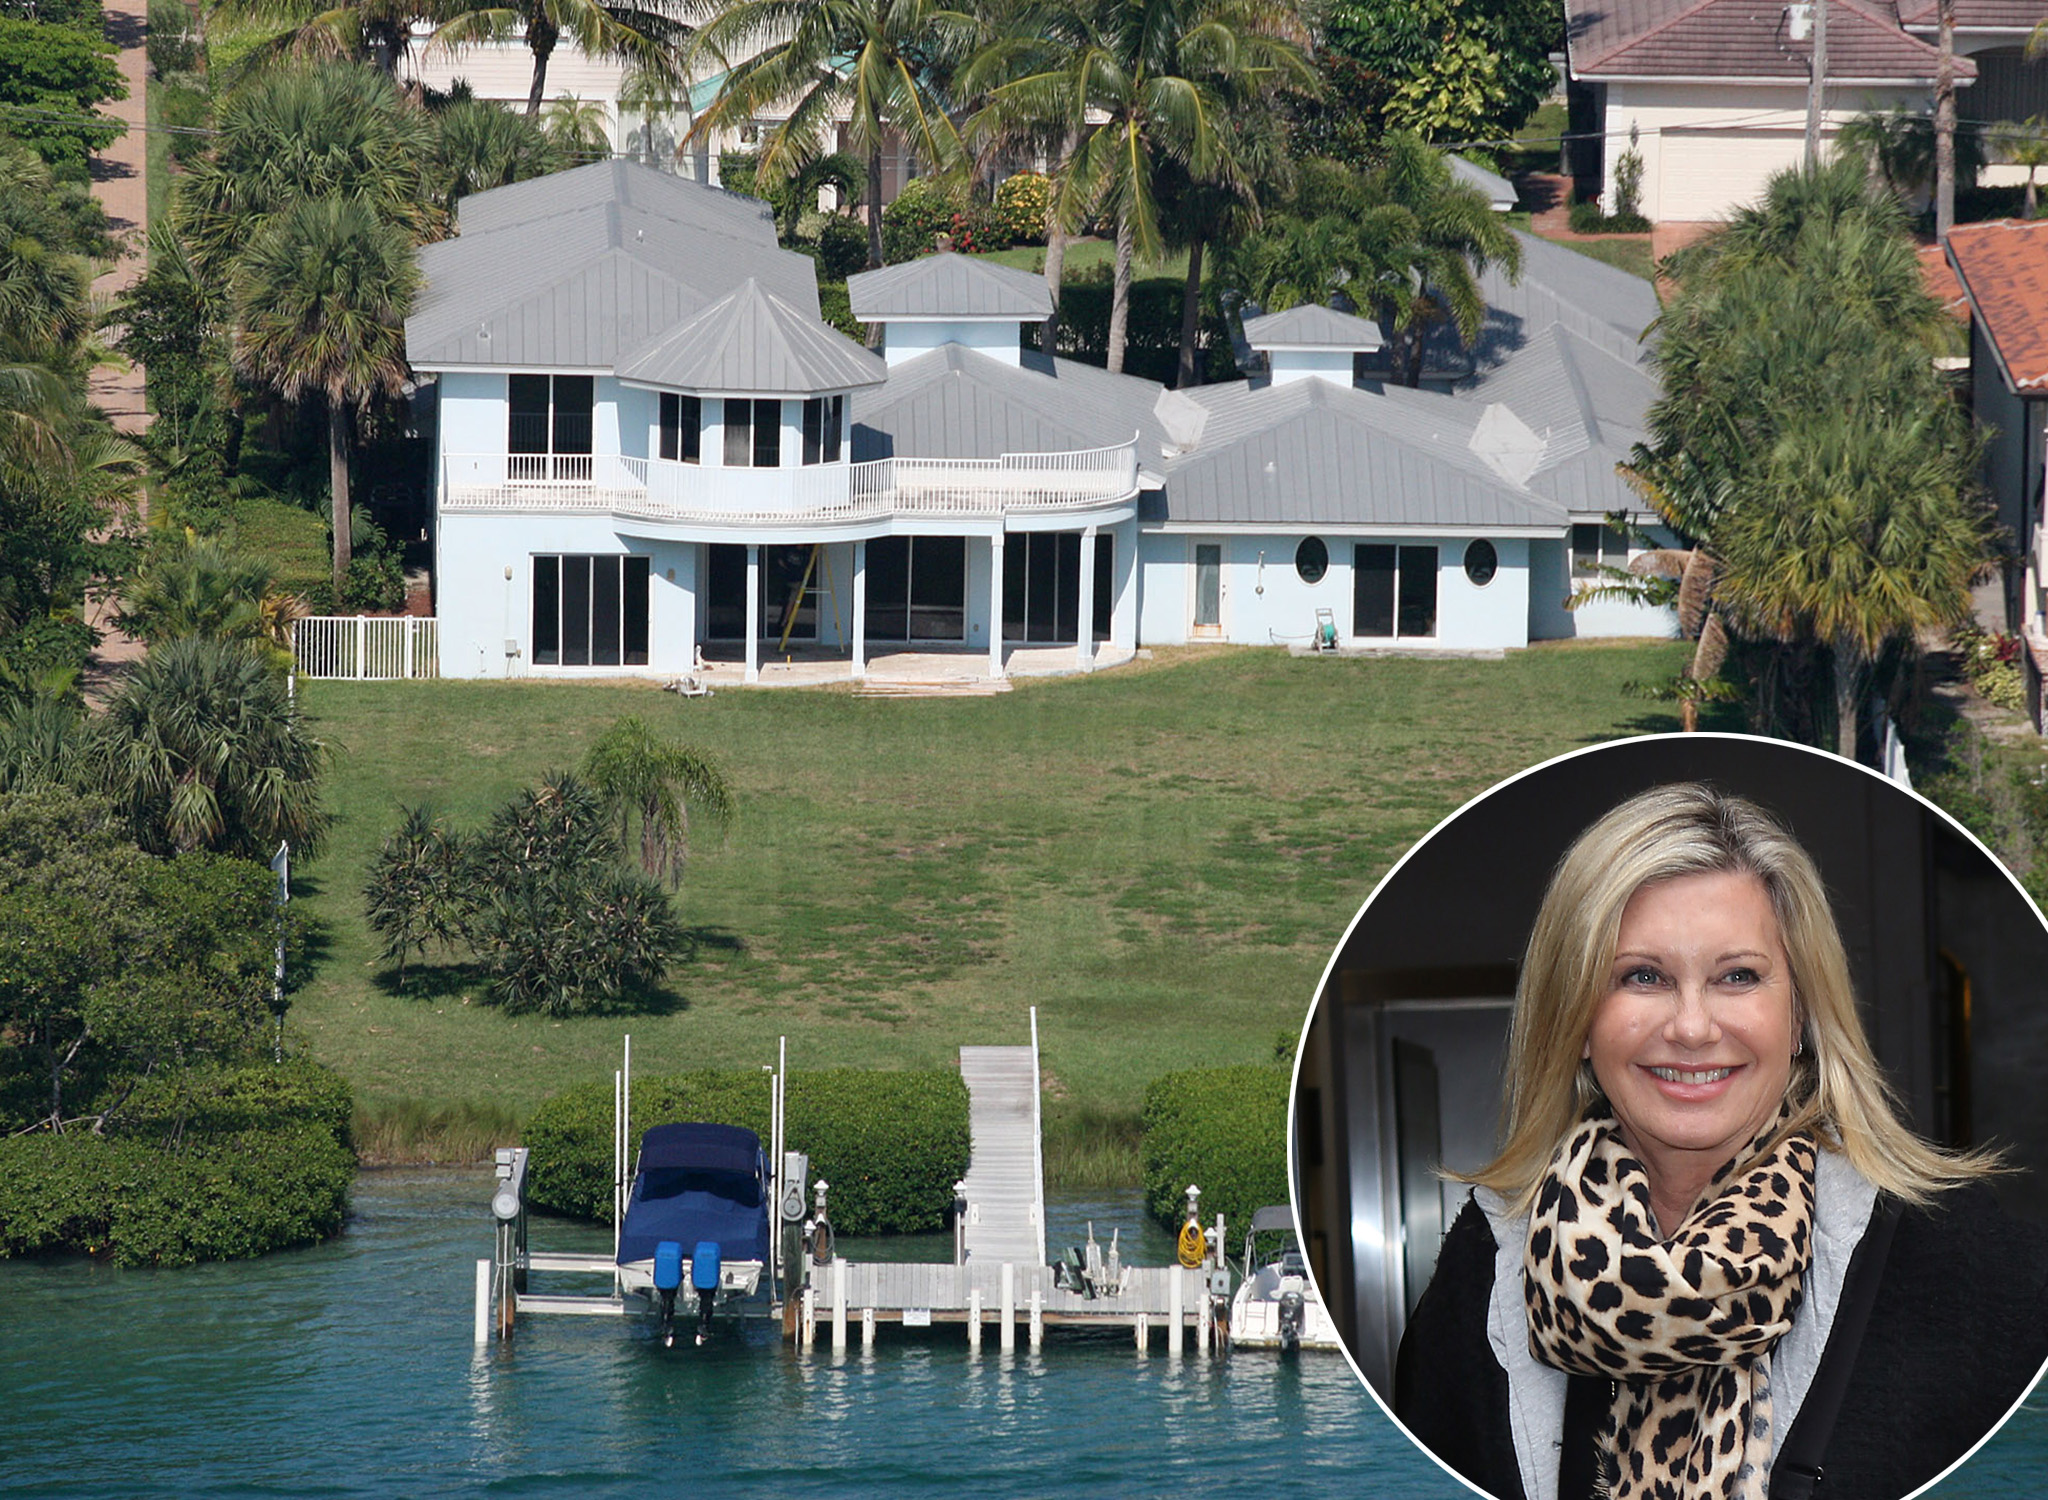 A death occurred at Olivia Newton John's home (Splash News/FilmMagic)